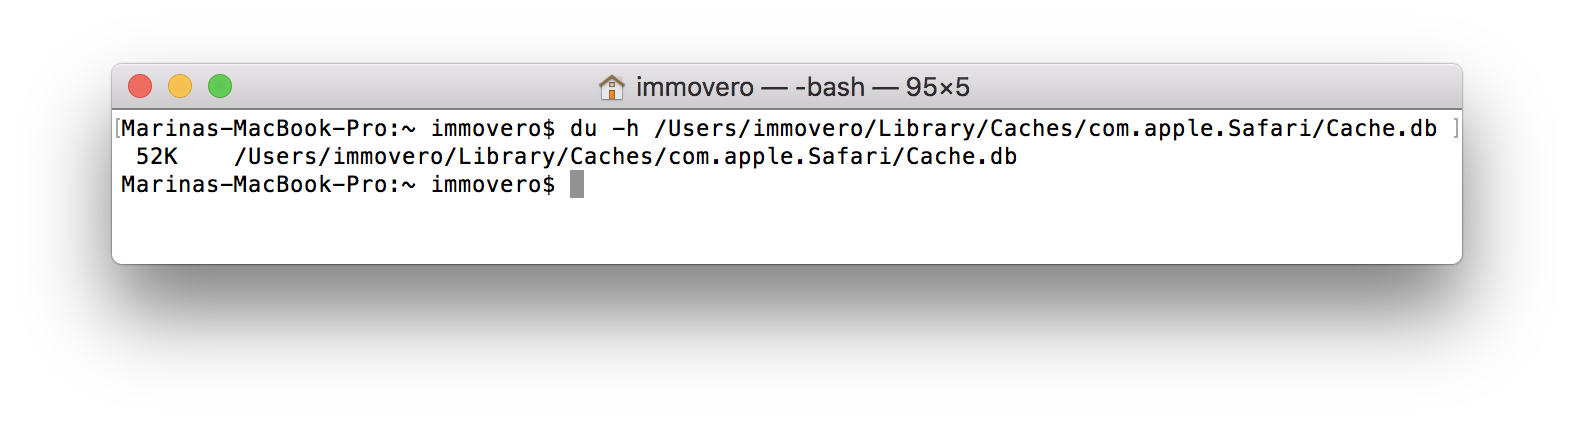 How to clear cache in macOS